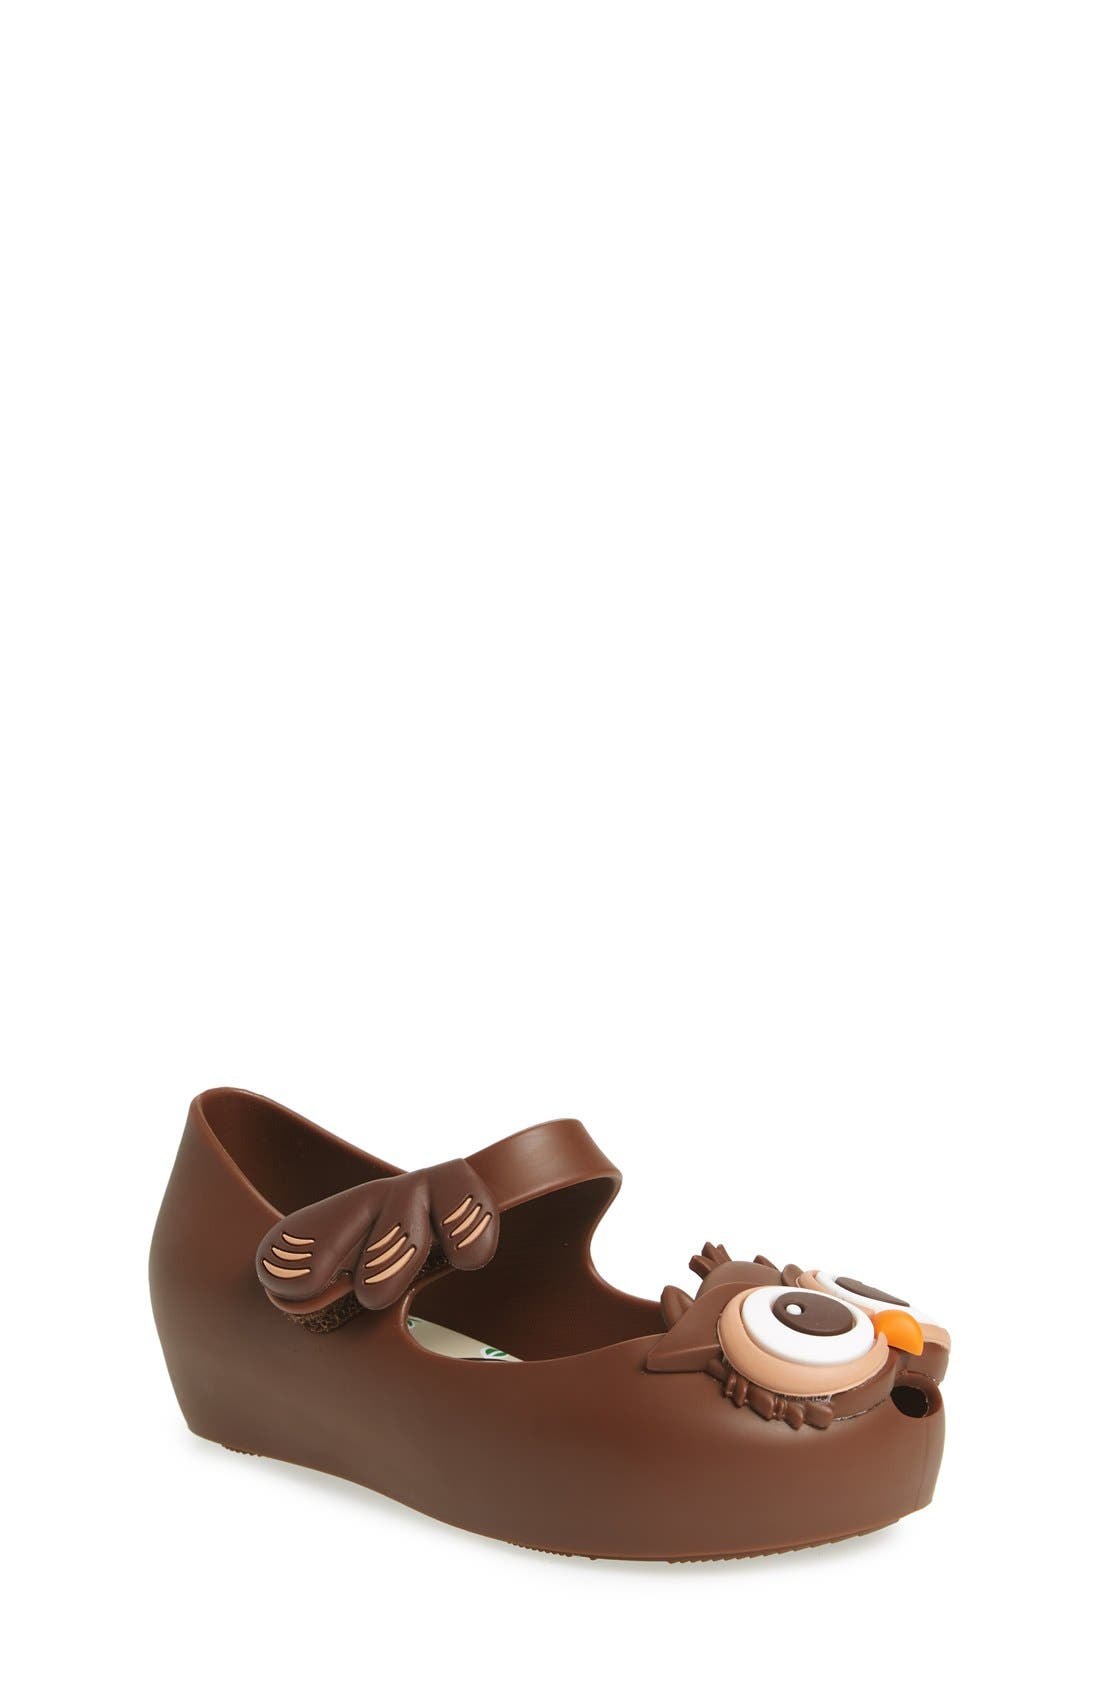 Alternate Image 1 Selected - Mini Melissa Ultragirl V Owl Slip-On Mary Jane (Walker & Toddler)